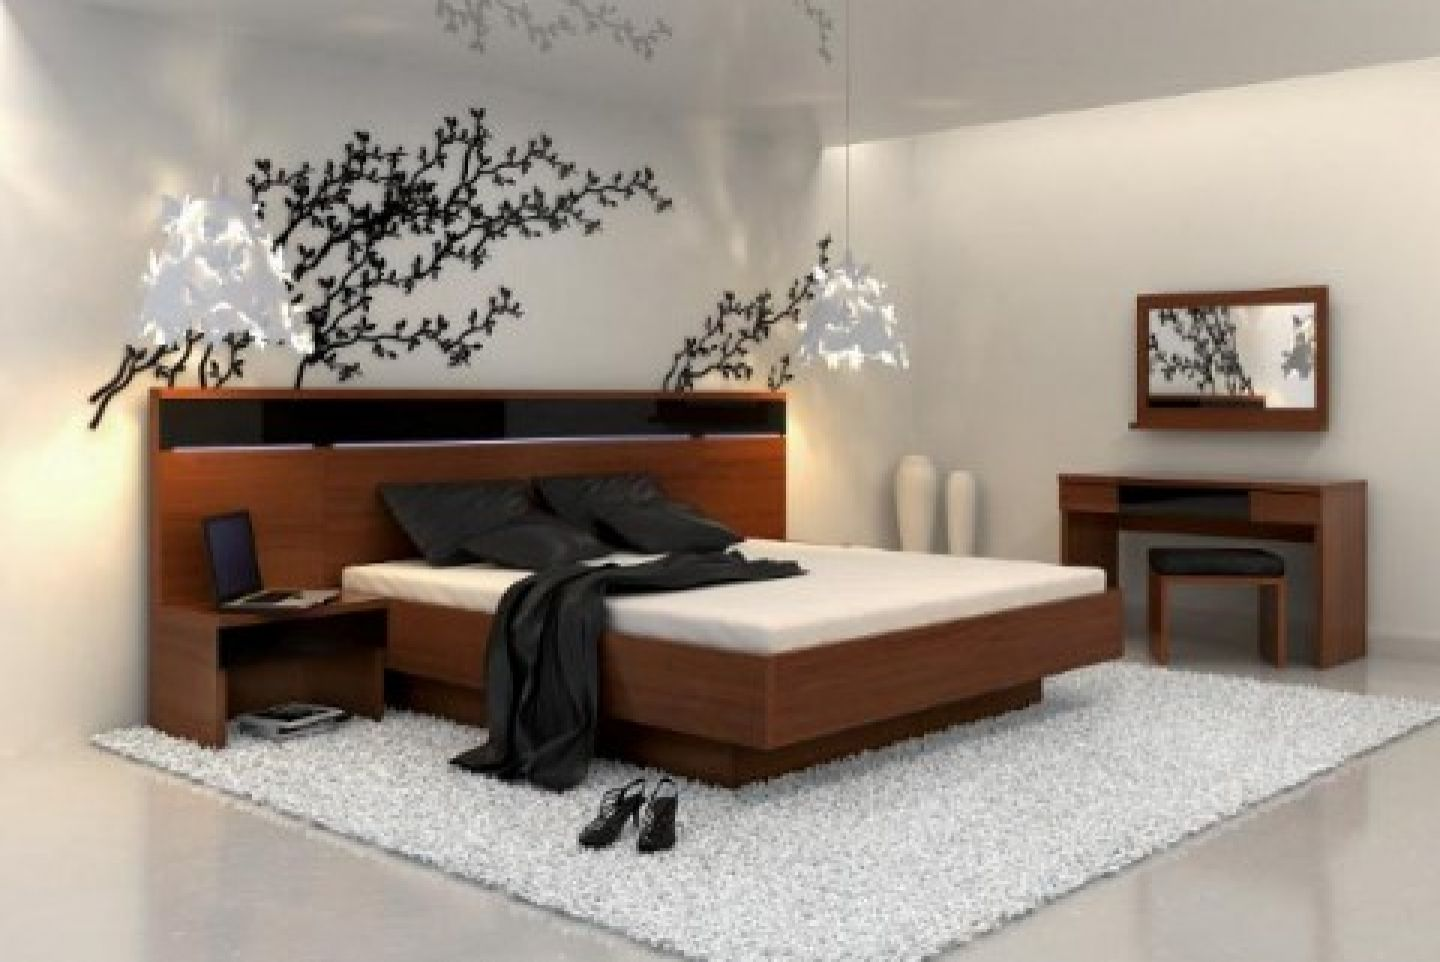 Anese Inspired Bedroom Designs Collection Enthralling White Design With Chic Wood Frame